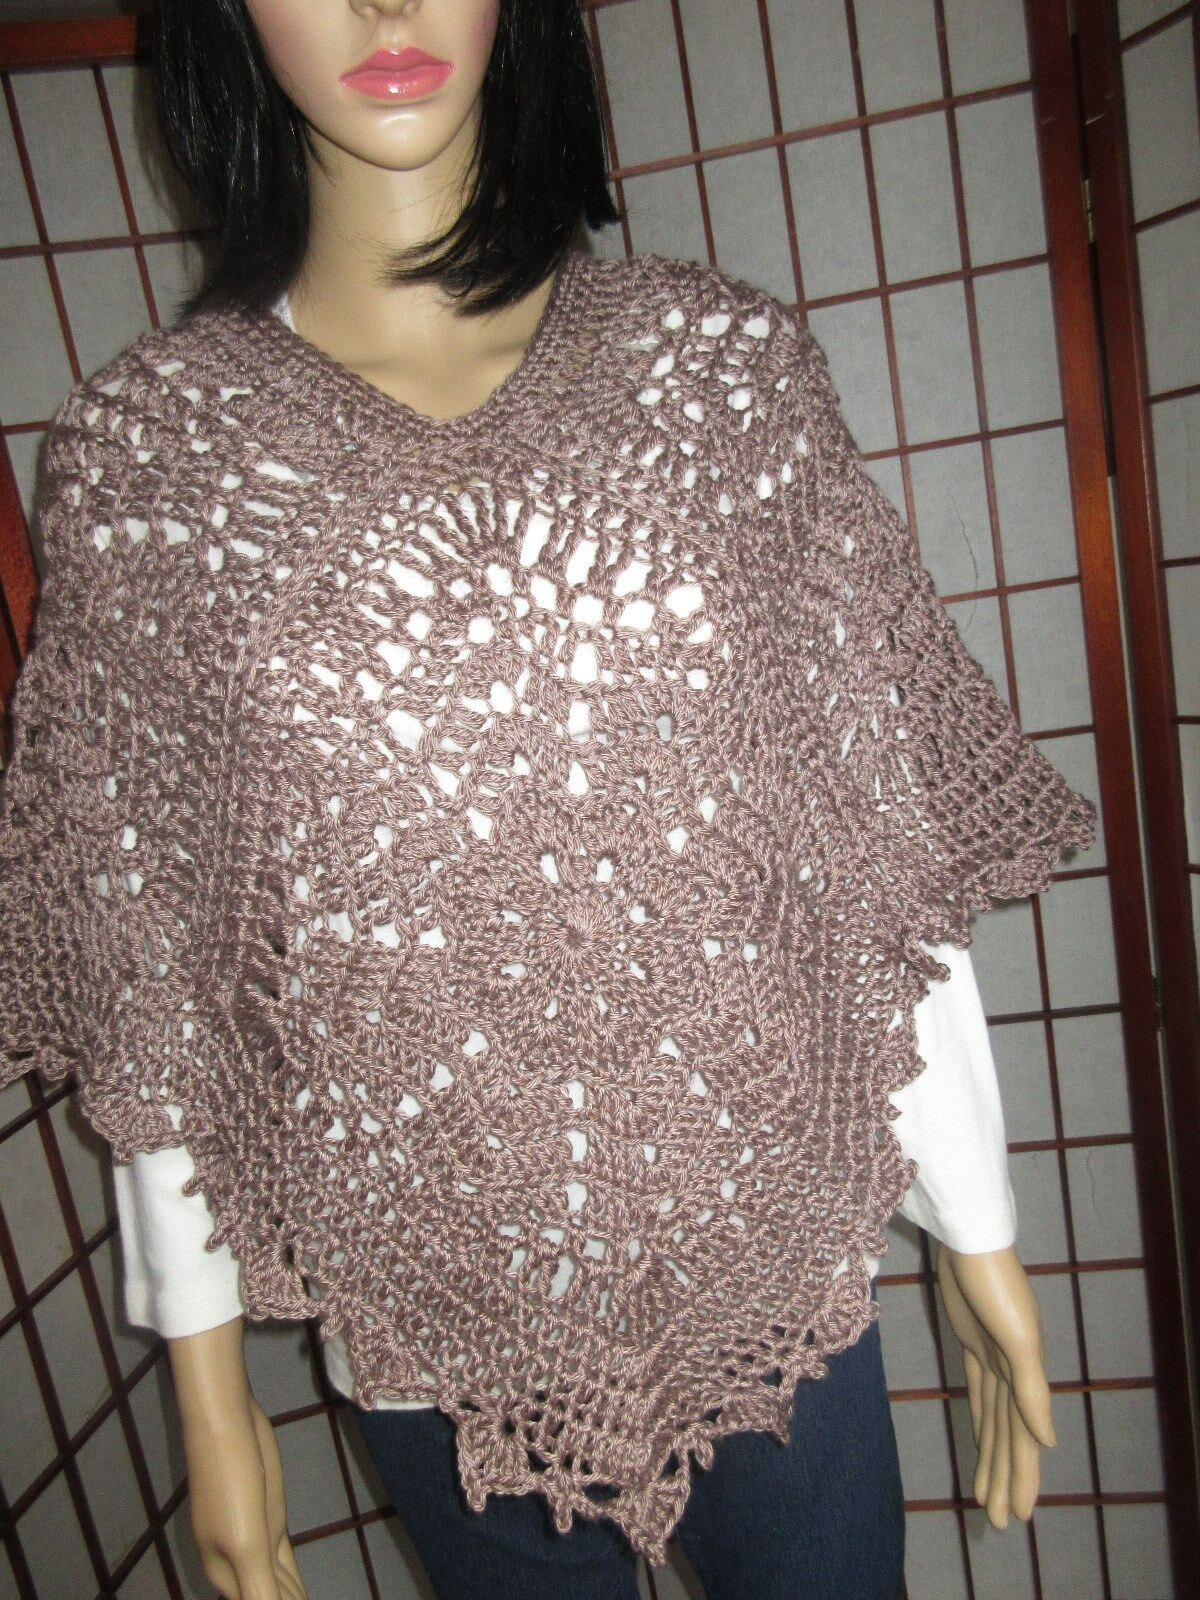 WOMEN'S  HANDMADE CROCHETED CROCHETED CROCHETED BROWN PONCHO SIZE S-L 36f502